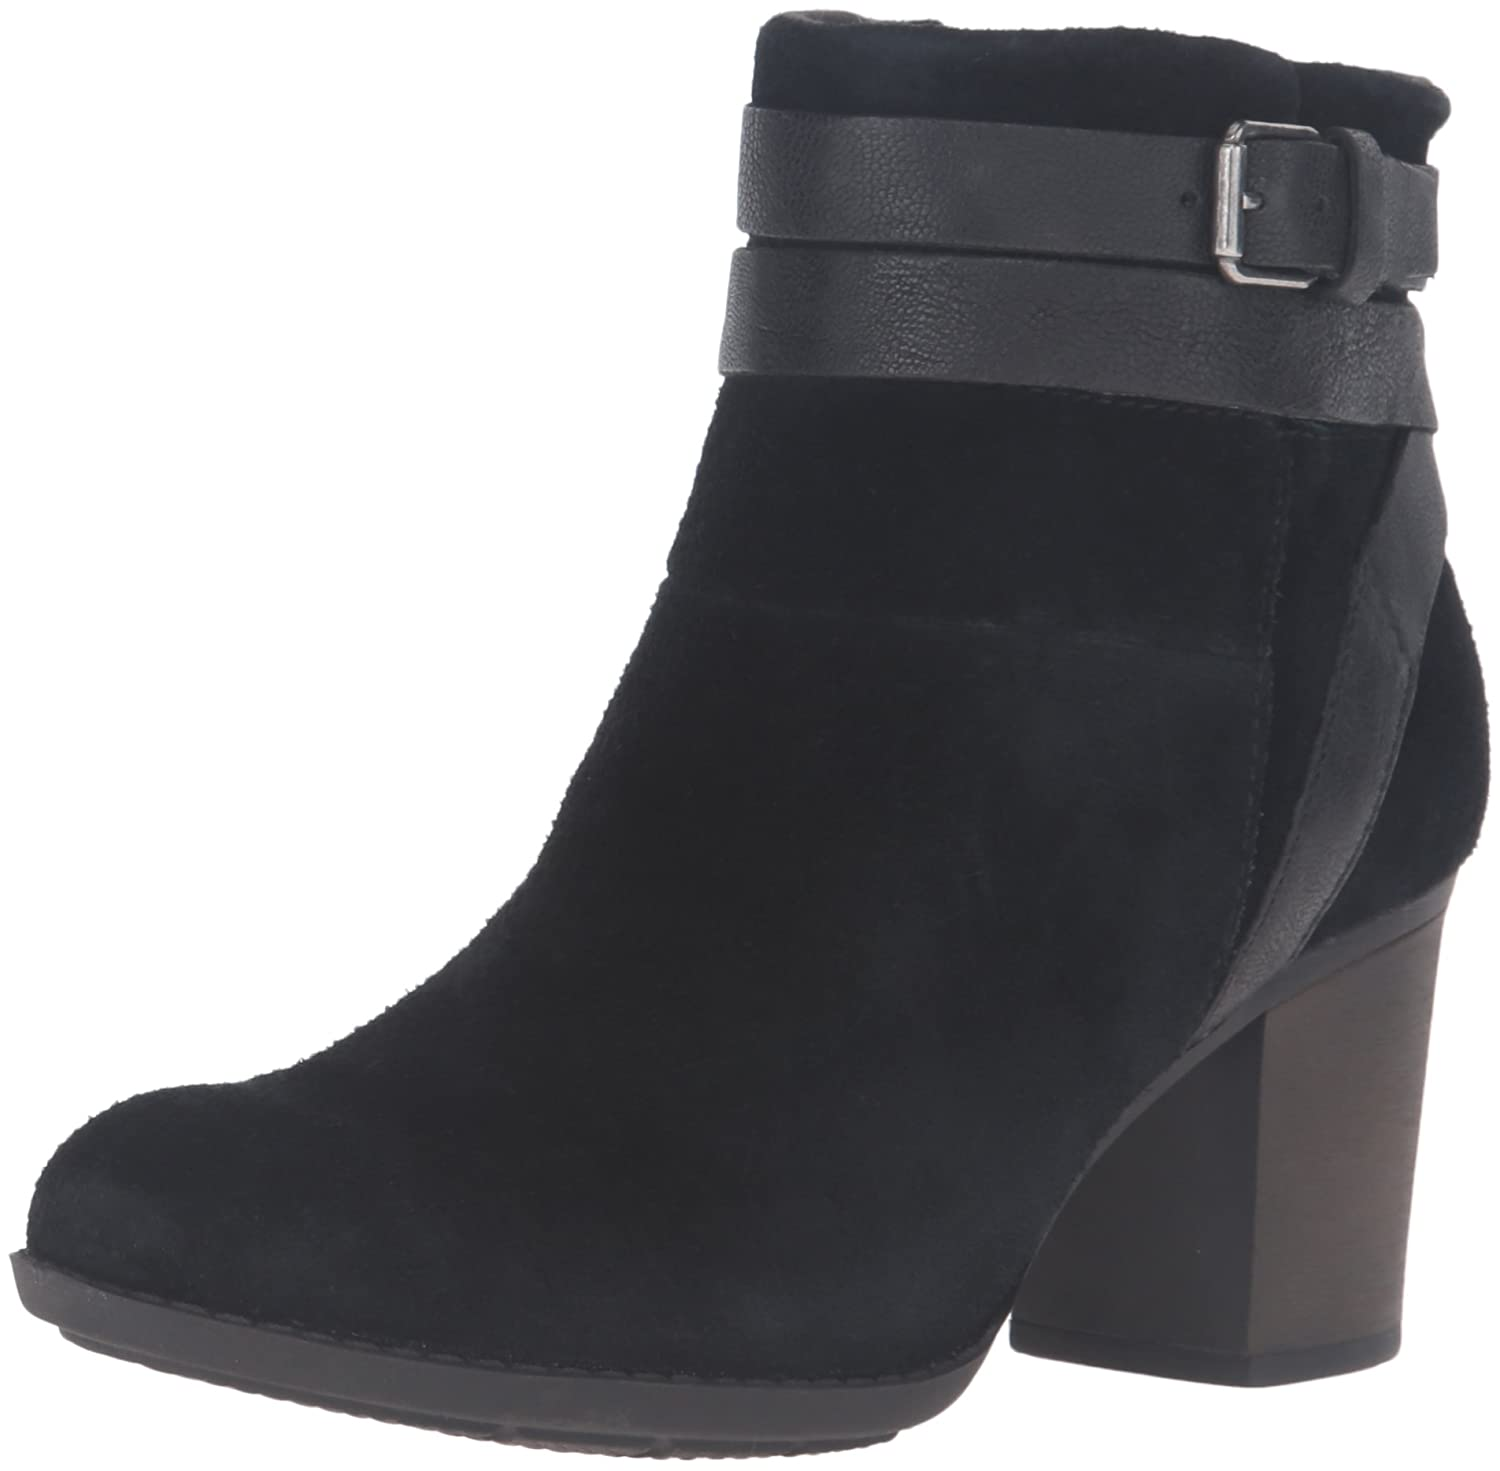 CLARKS Women's Enfield River Boot B0198WHCAG 5.5 B(M) US|Black Suede